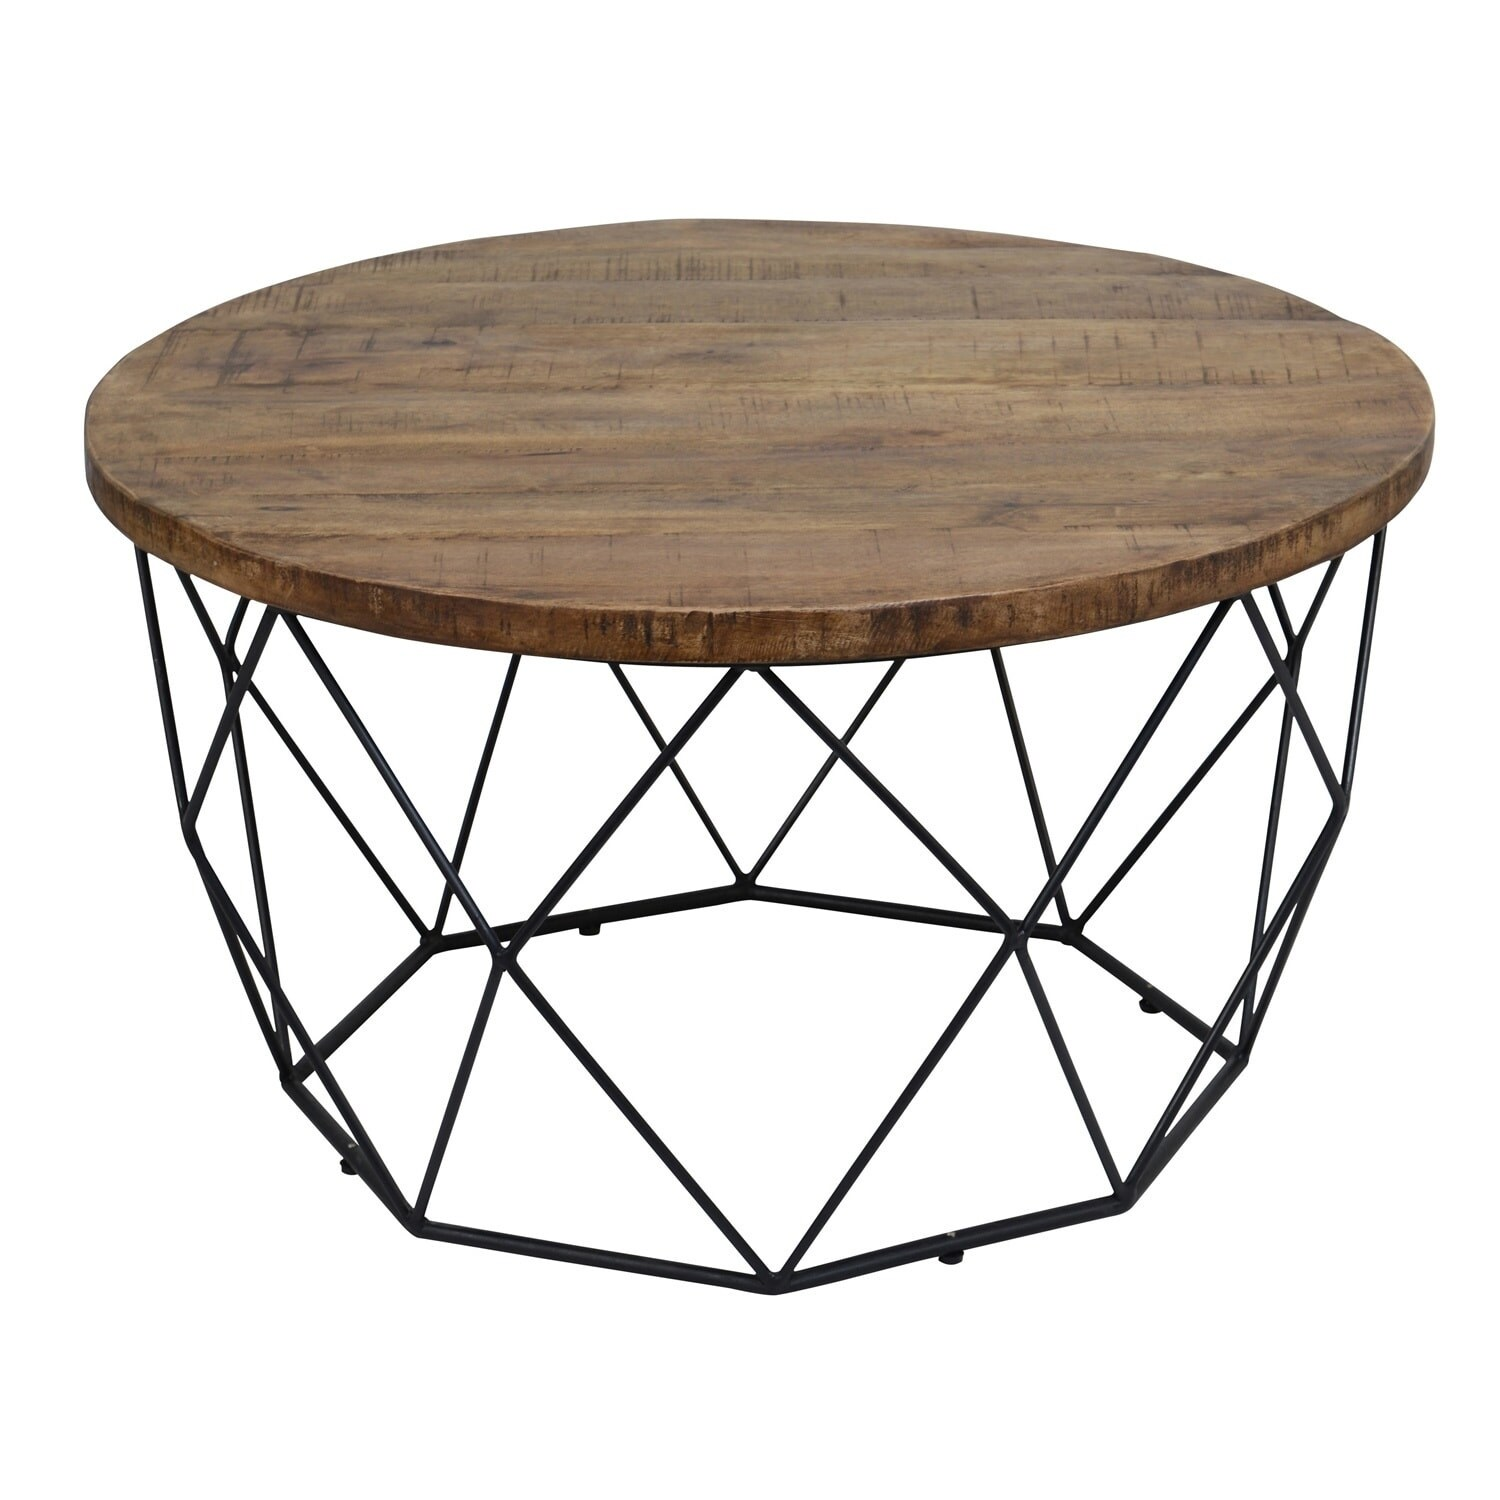 Shop chester wood and iron geometric round coffee table by kosas home on sale free shipping today overstock com 14080585